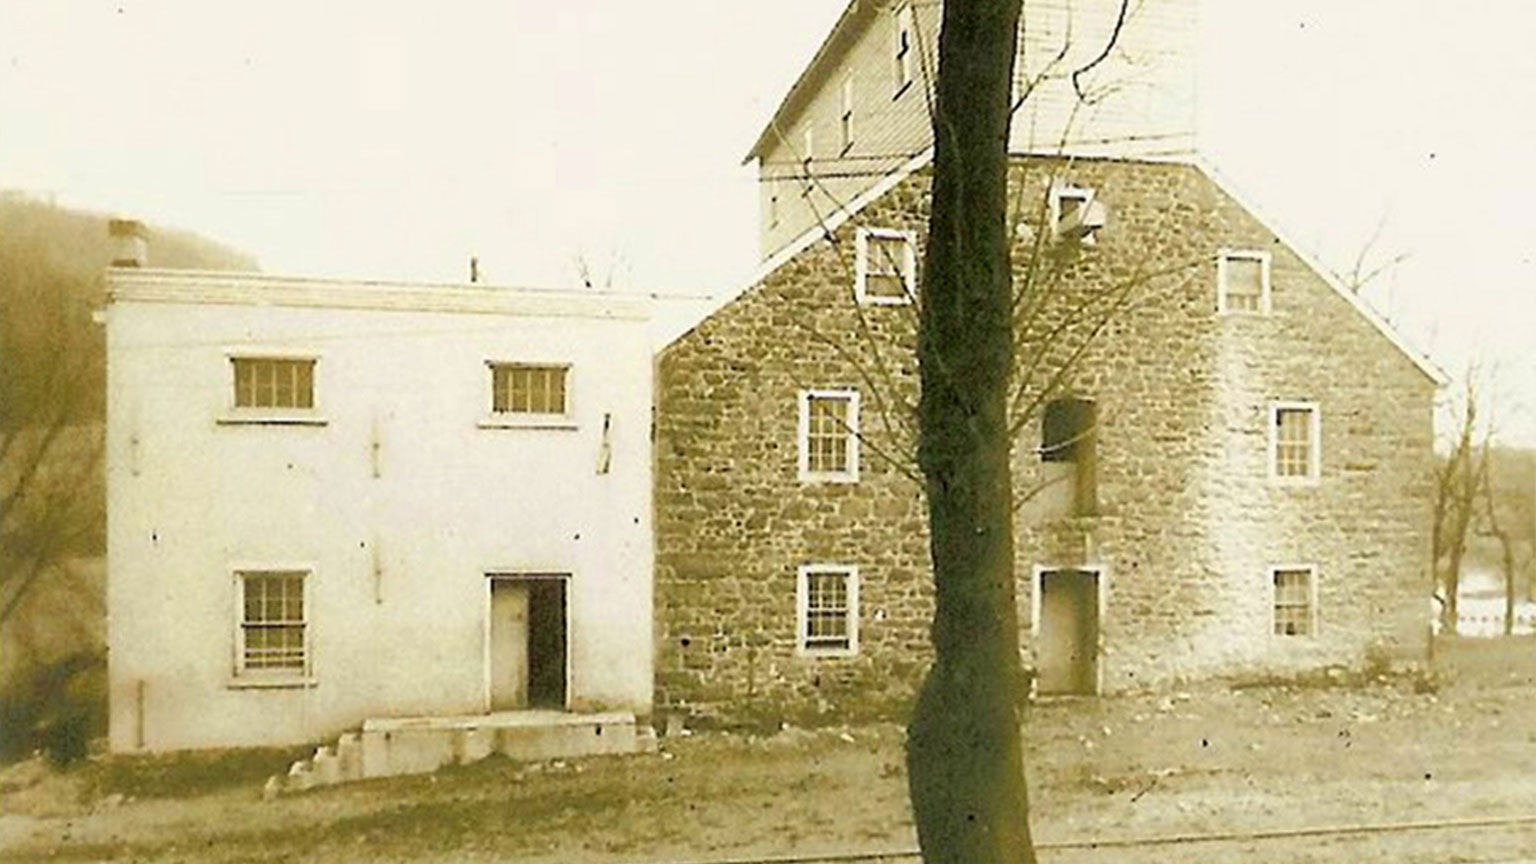 Gristmills were busy places in the mid 1800s and would have used the canal a lot to move its goods.